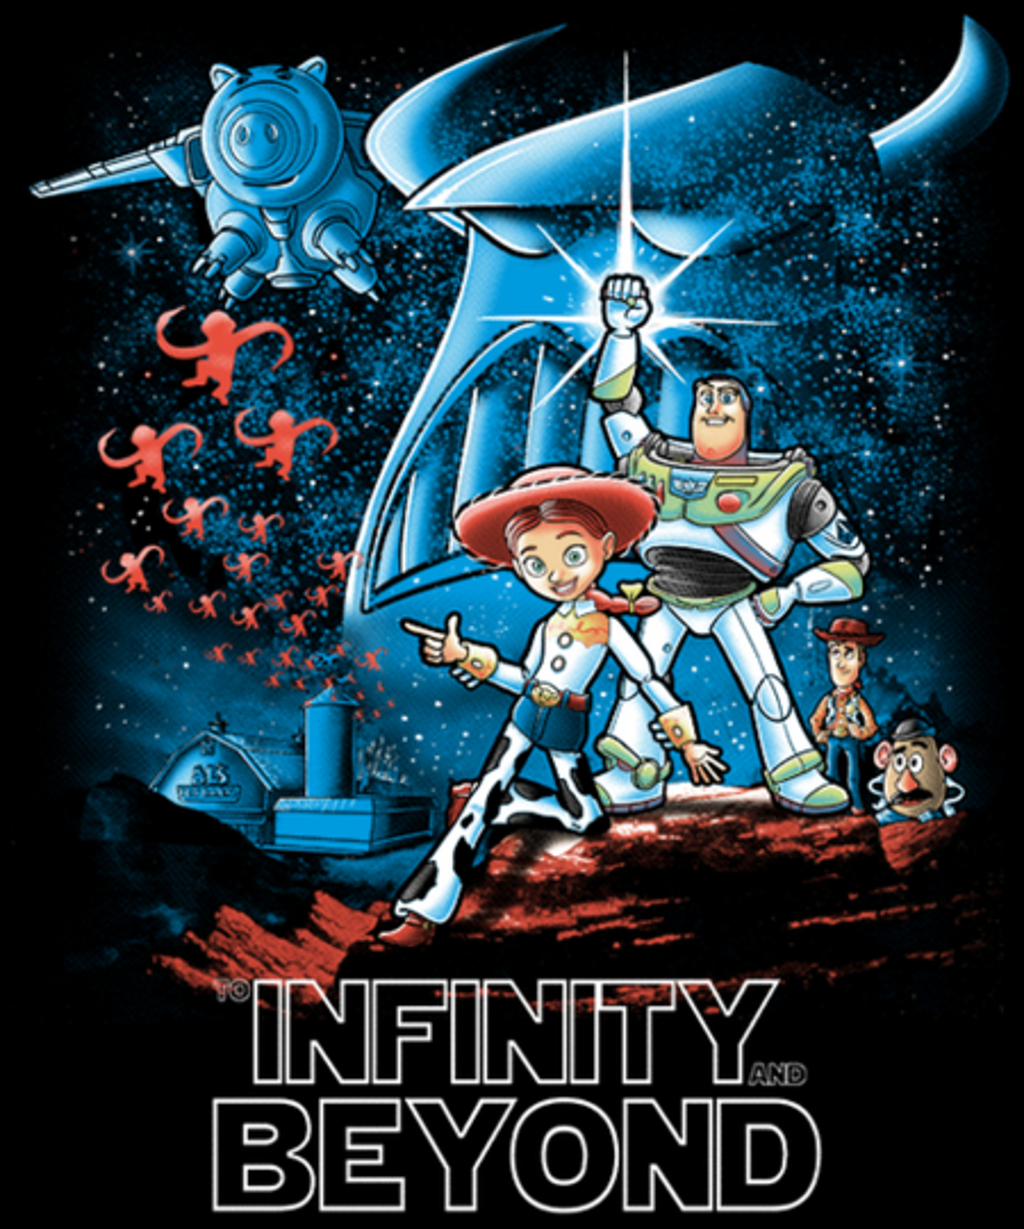 Qwertee: To infinity and beyond